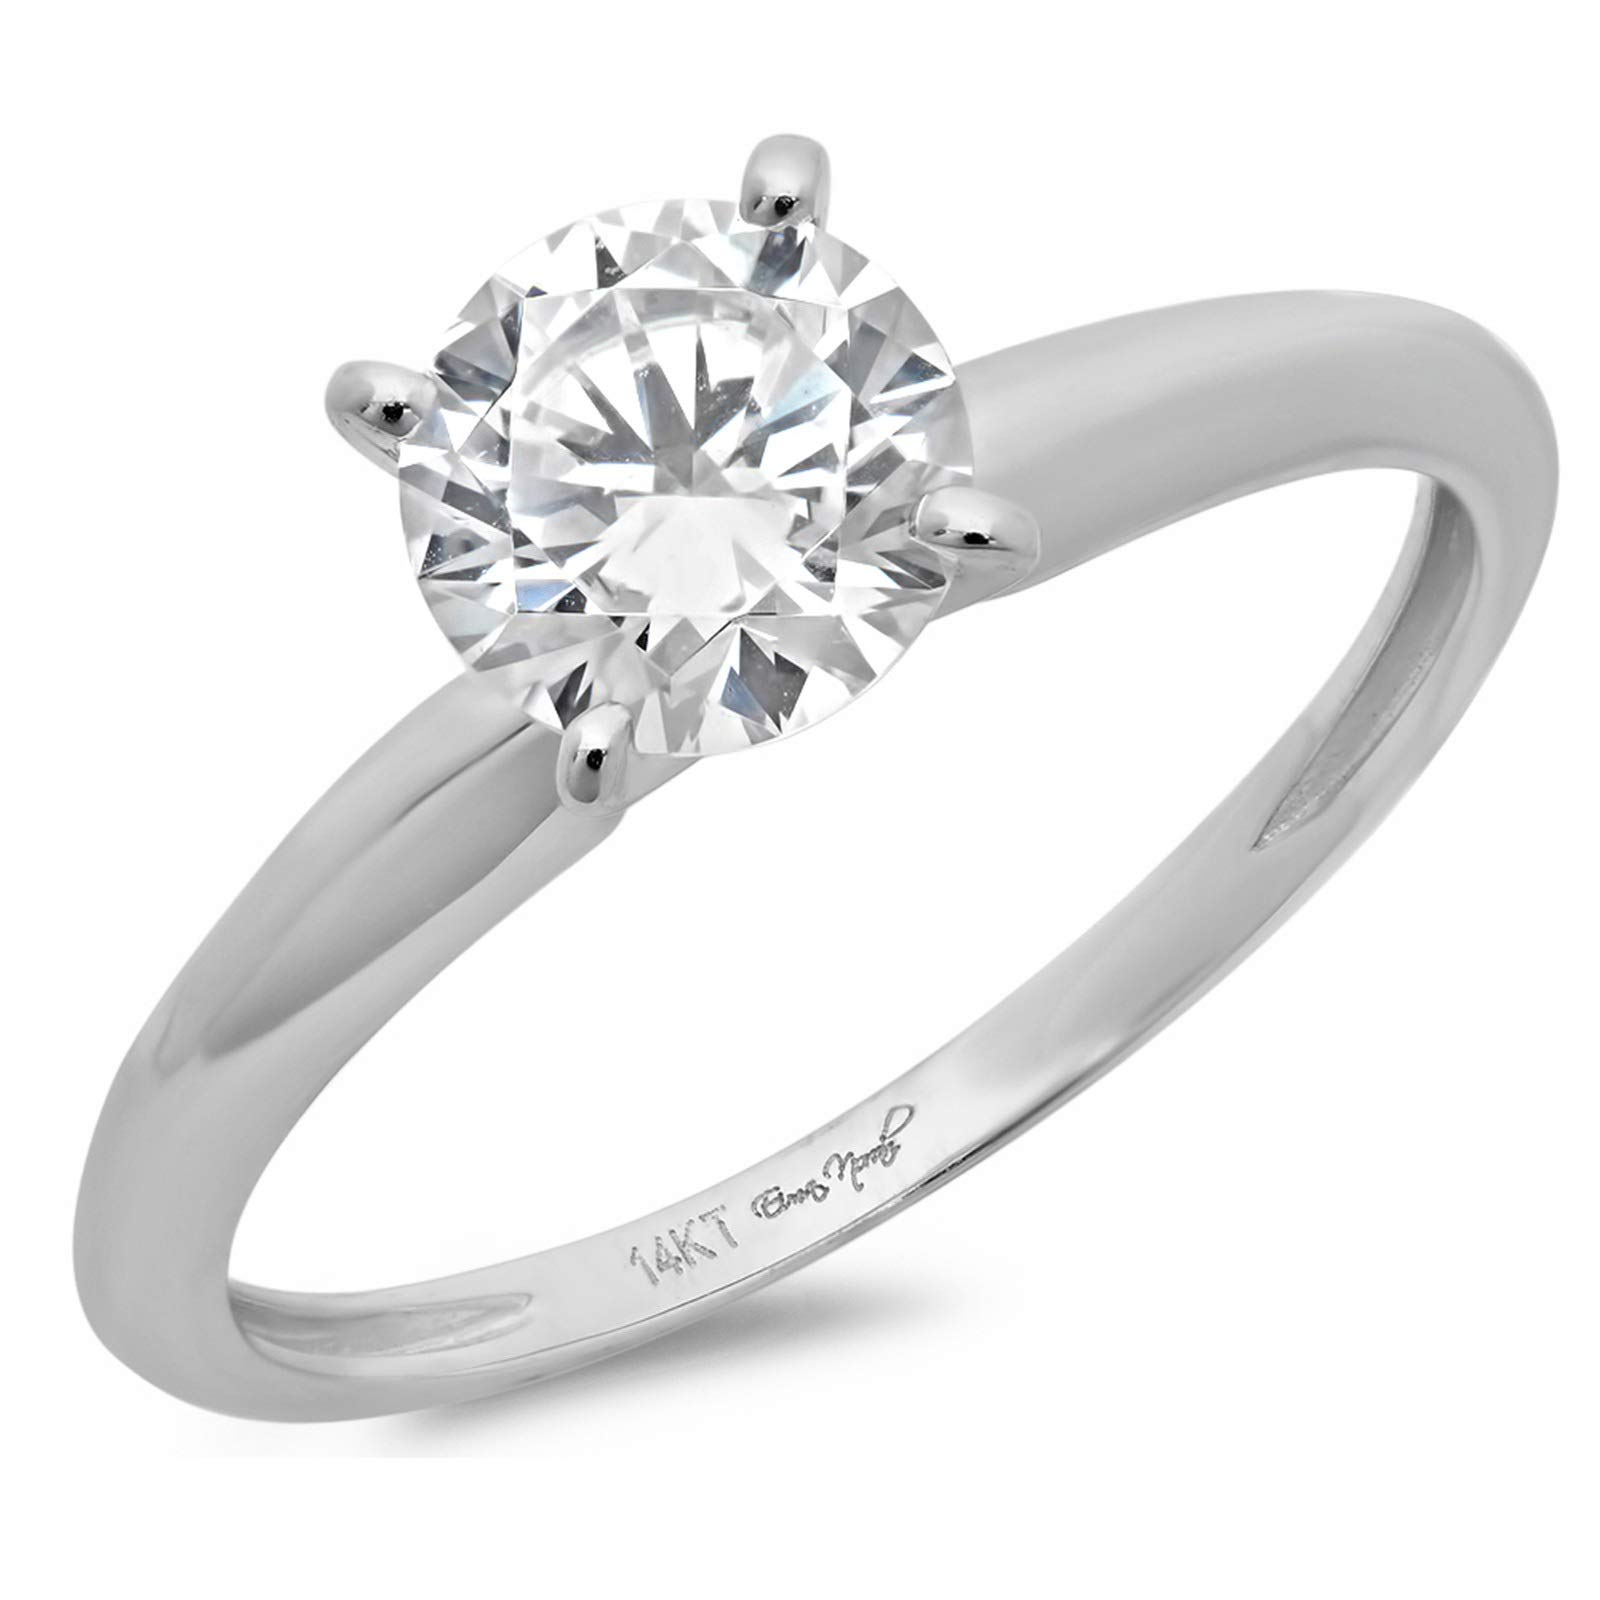 1.50 ct Brilliant Round Cut Solitaire Highest Quality Moissanite Ideal VVS1 D 4-Prong Engagement Wedding Bridal Promise Anniversary Ring in Solid Real 14k White Gold for Women